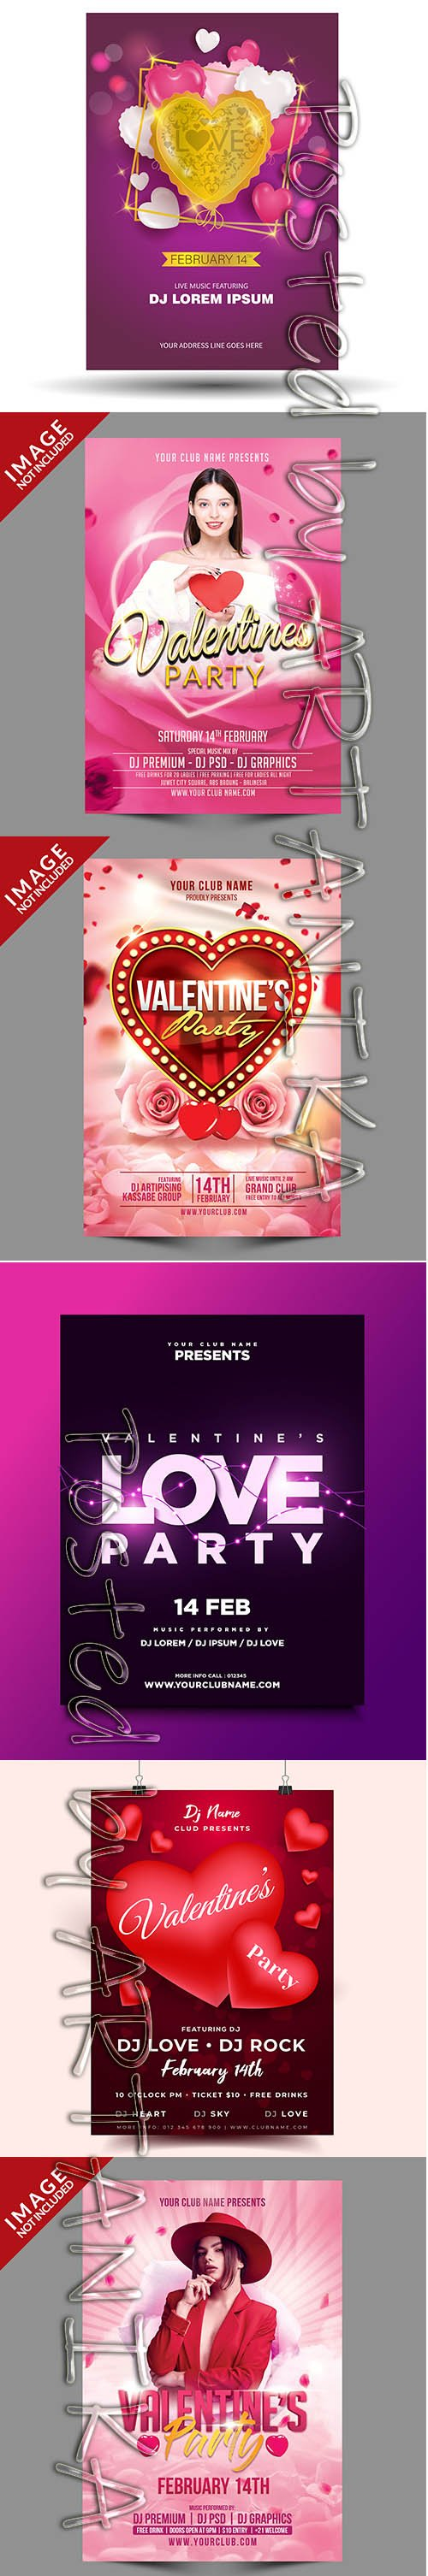 Valentines Party Flyer Psd Template Set